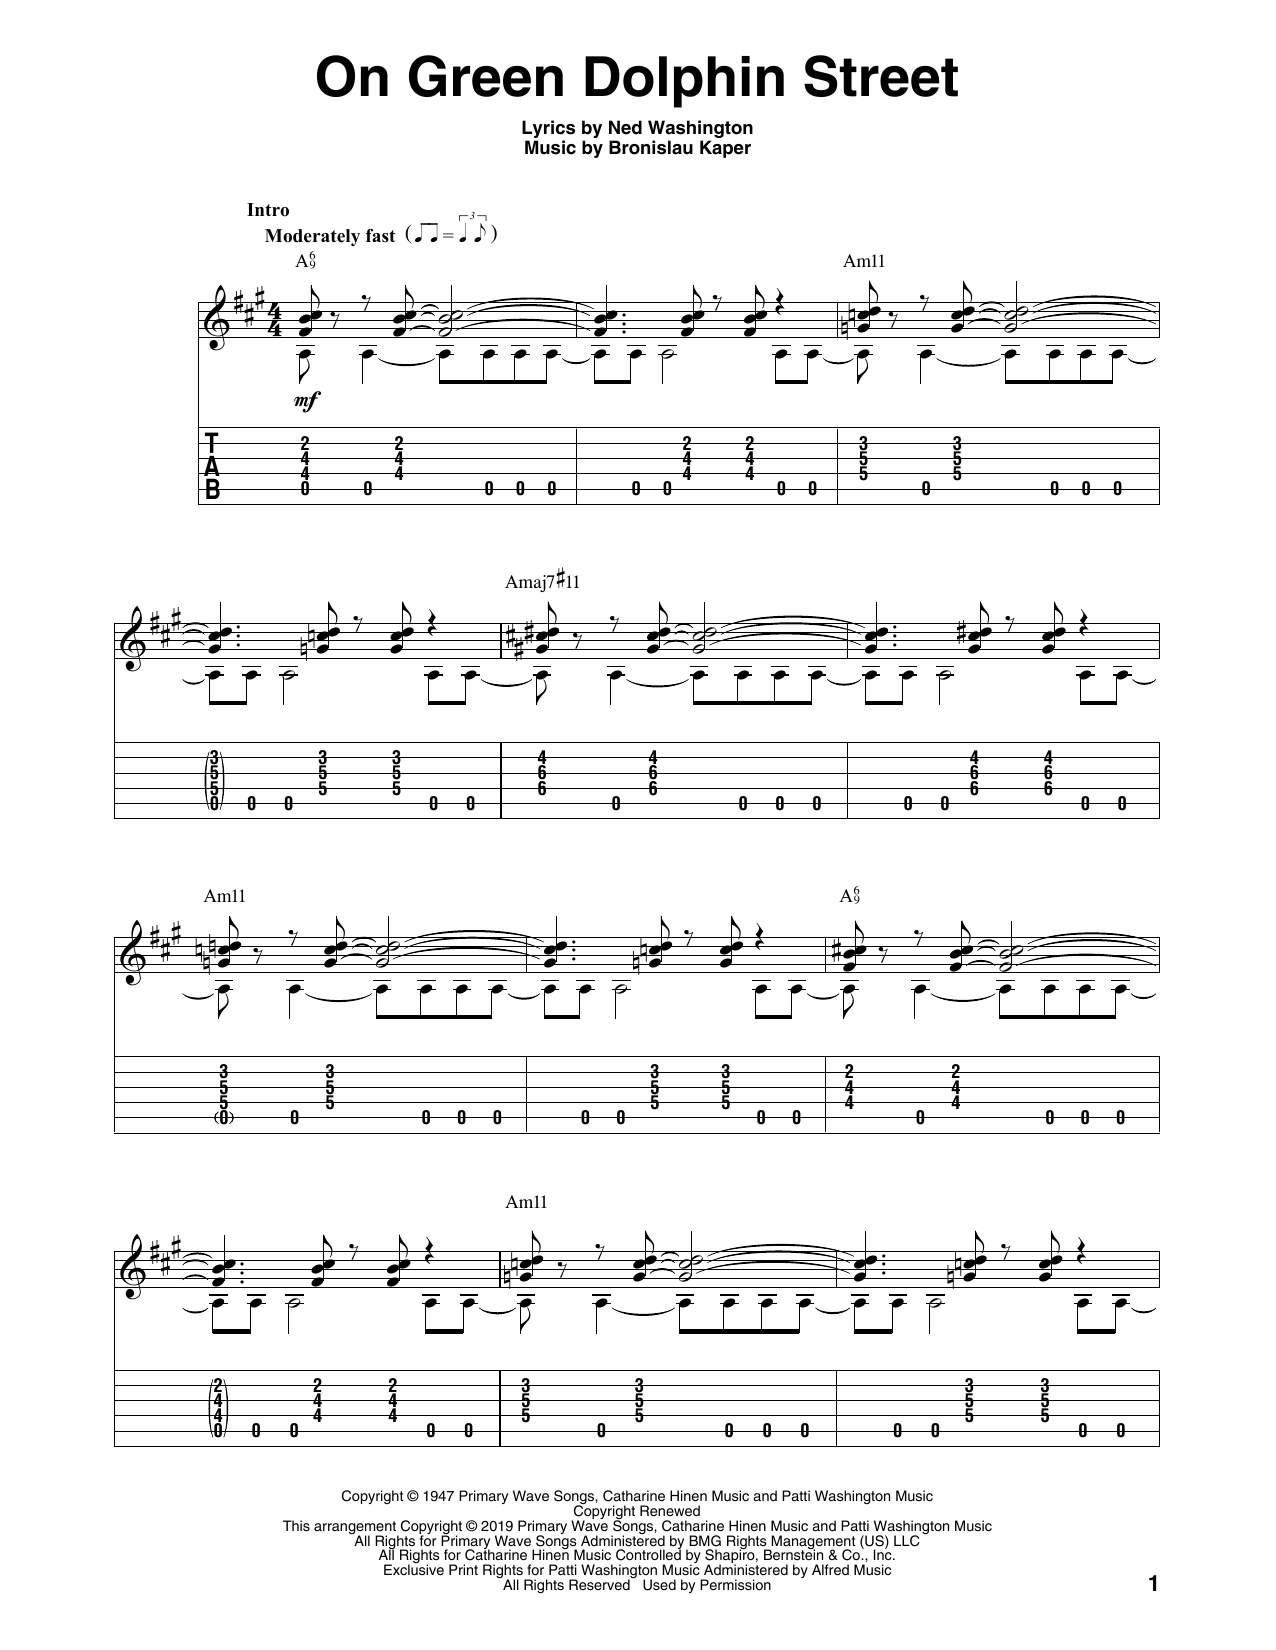 Ned Washington 'On Green Dolphin Street' Sheet Music Notes, Chords |  Download Printable Solo Guitar Tab - SKU: 414573